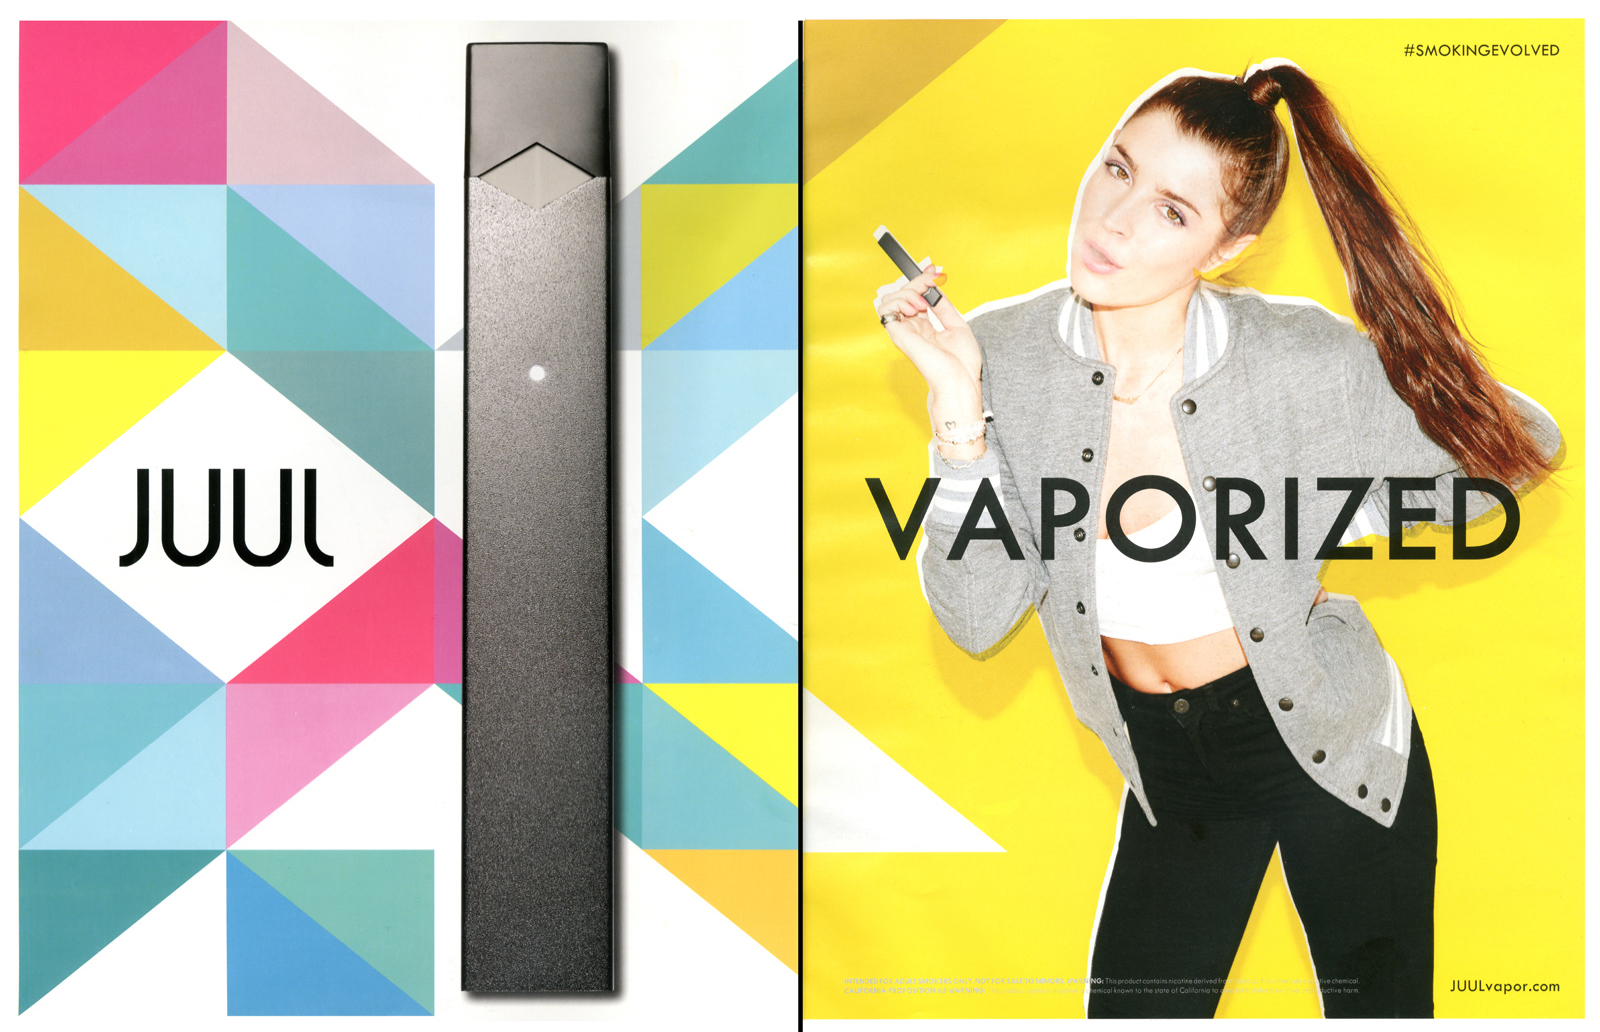 Juul Advertisement with multicolored shapes, a juul device and a young women smoking a Juul